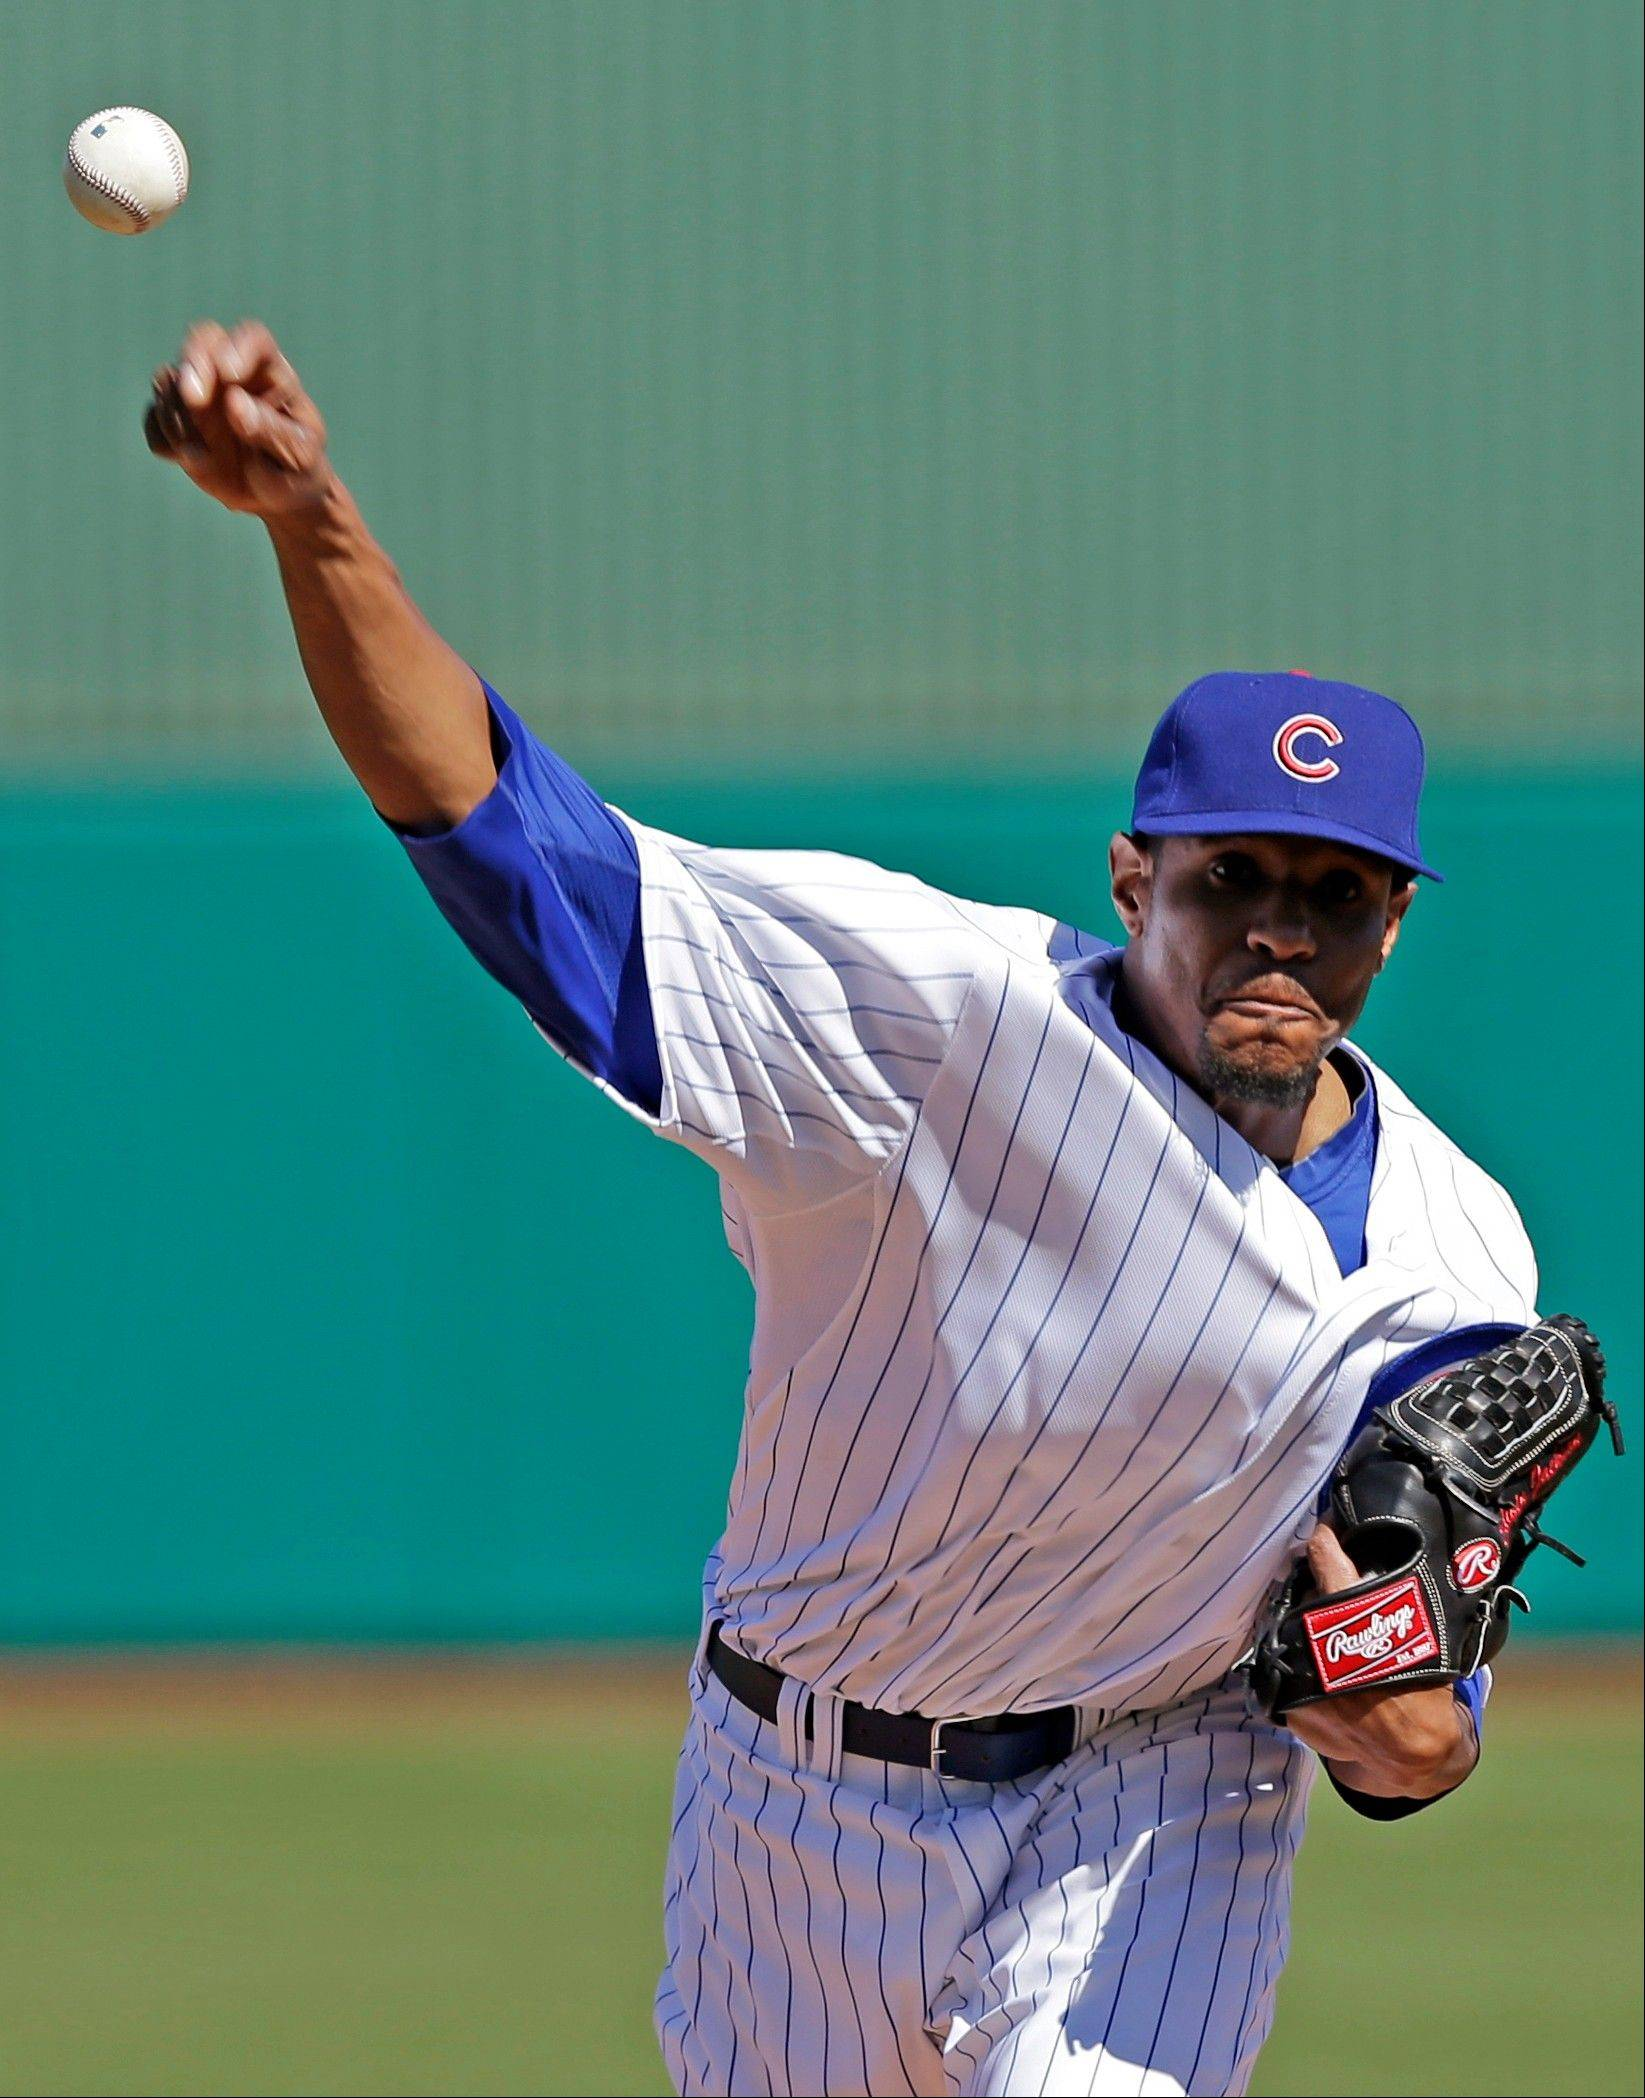 Chicago Cubs starting pitcher Edwin Jackson throws before the first inning of an exhibition spring training baseball game against the Colorado Rockies, Tuesday, Feb. 26, 2013, in Phoenix. (AP Photo/Morry Gash)